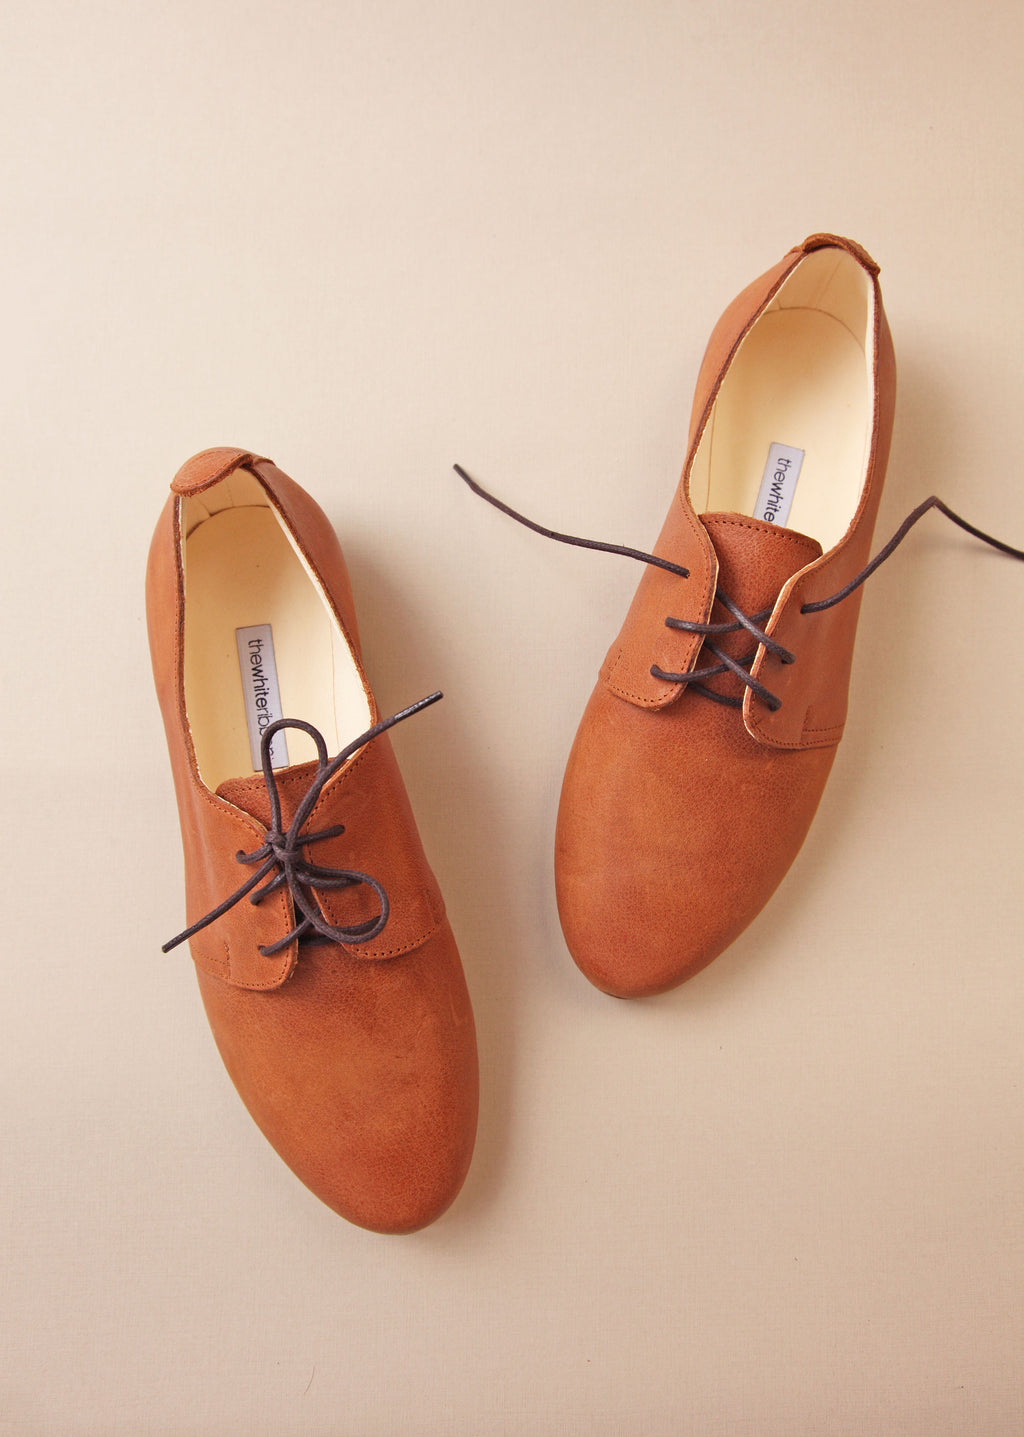 Cinnamon Brown Oxford Shoes